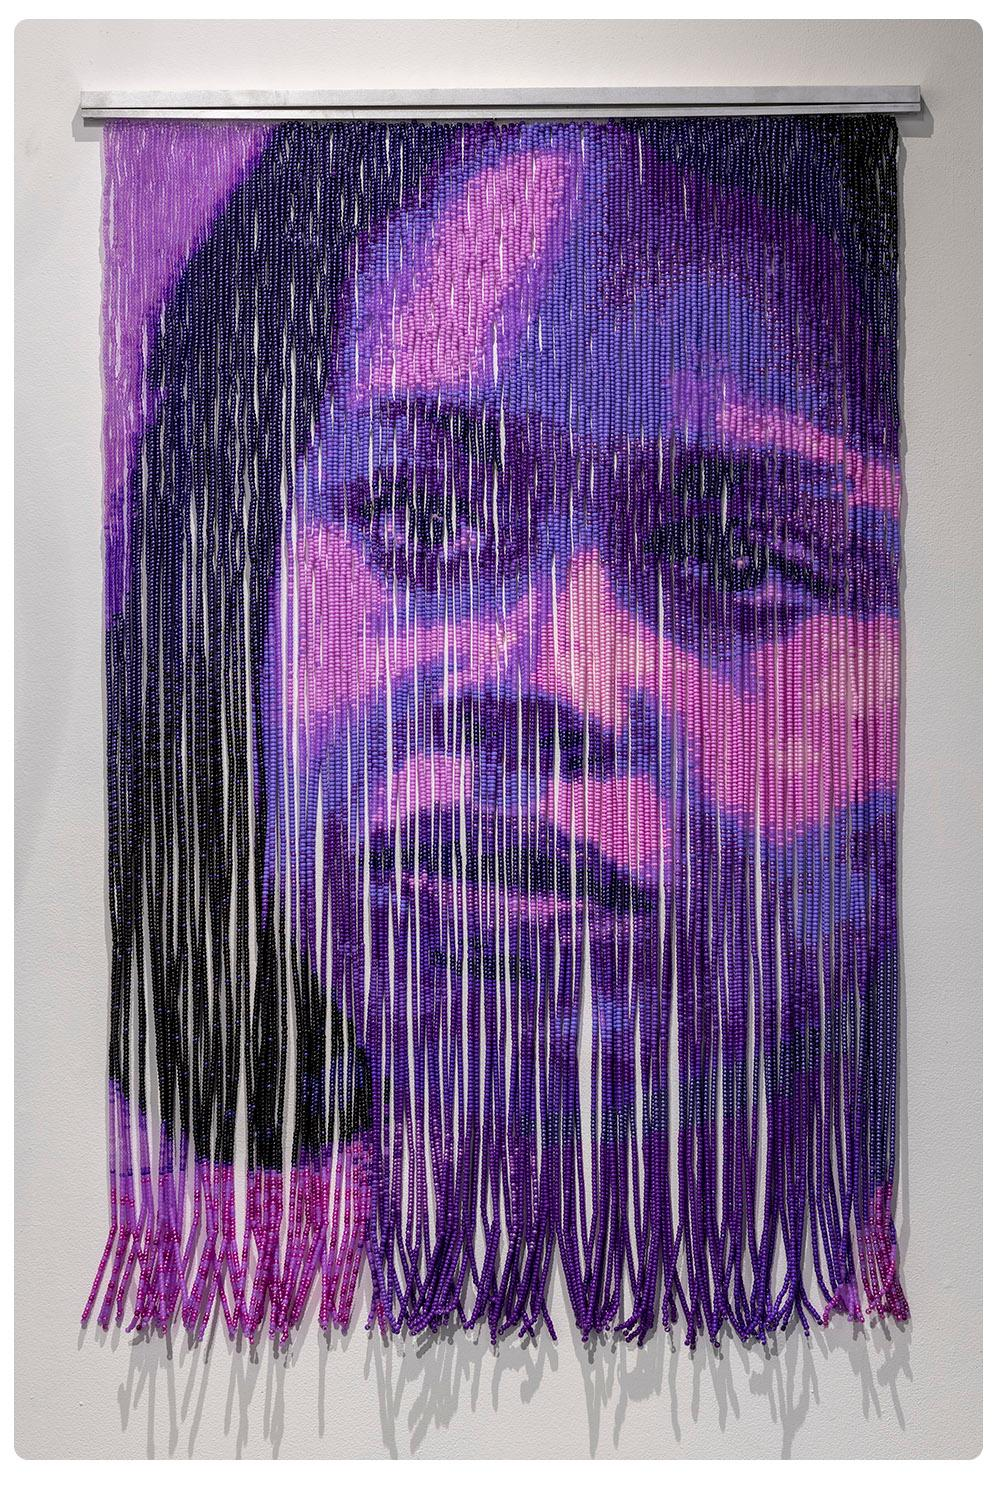 A portrait made from a purple beaded curtain